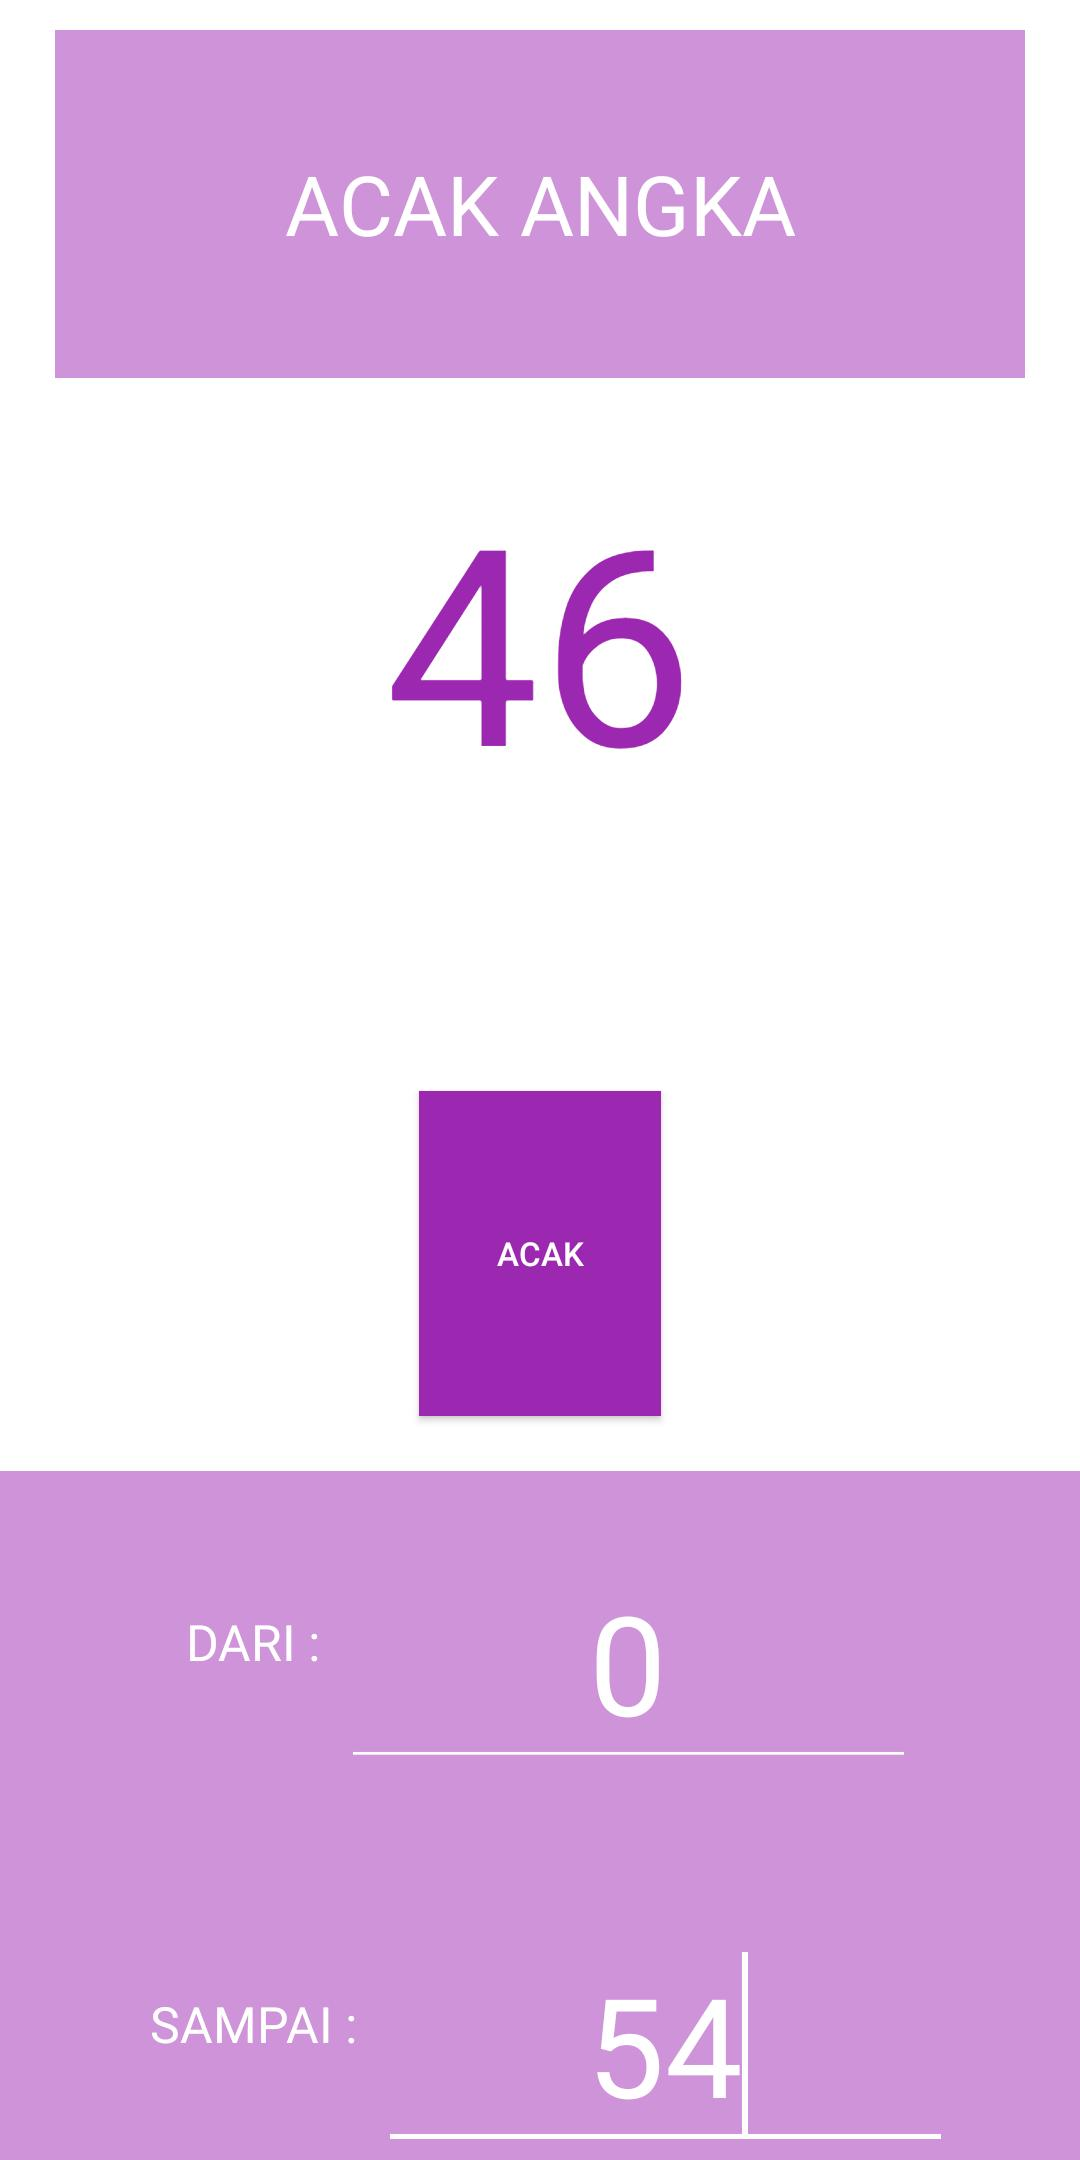 Acak Angka For Android Apk Download